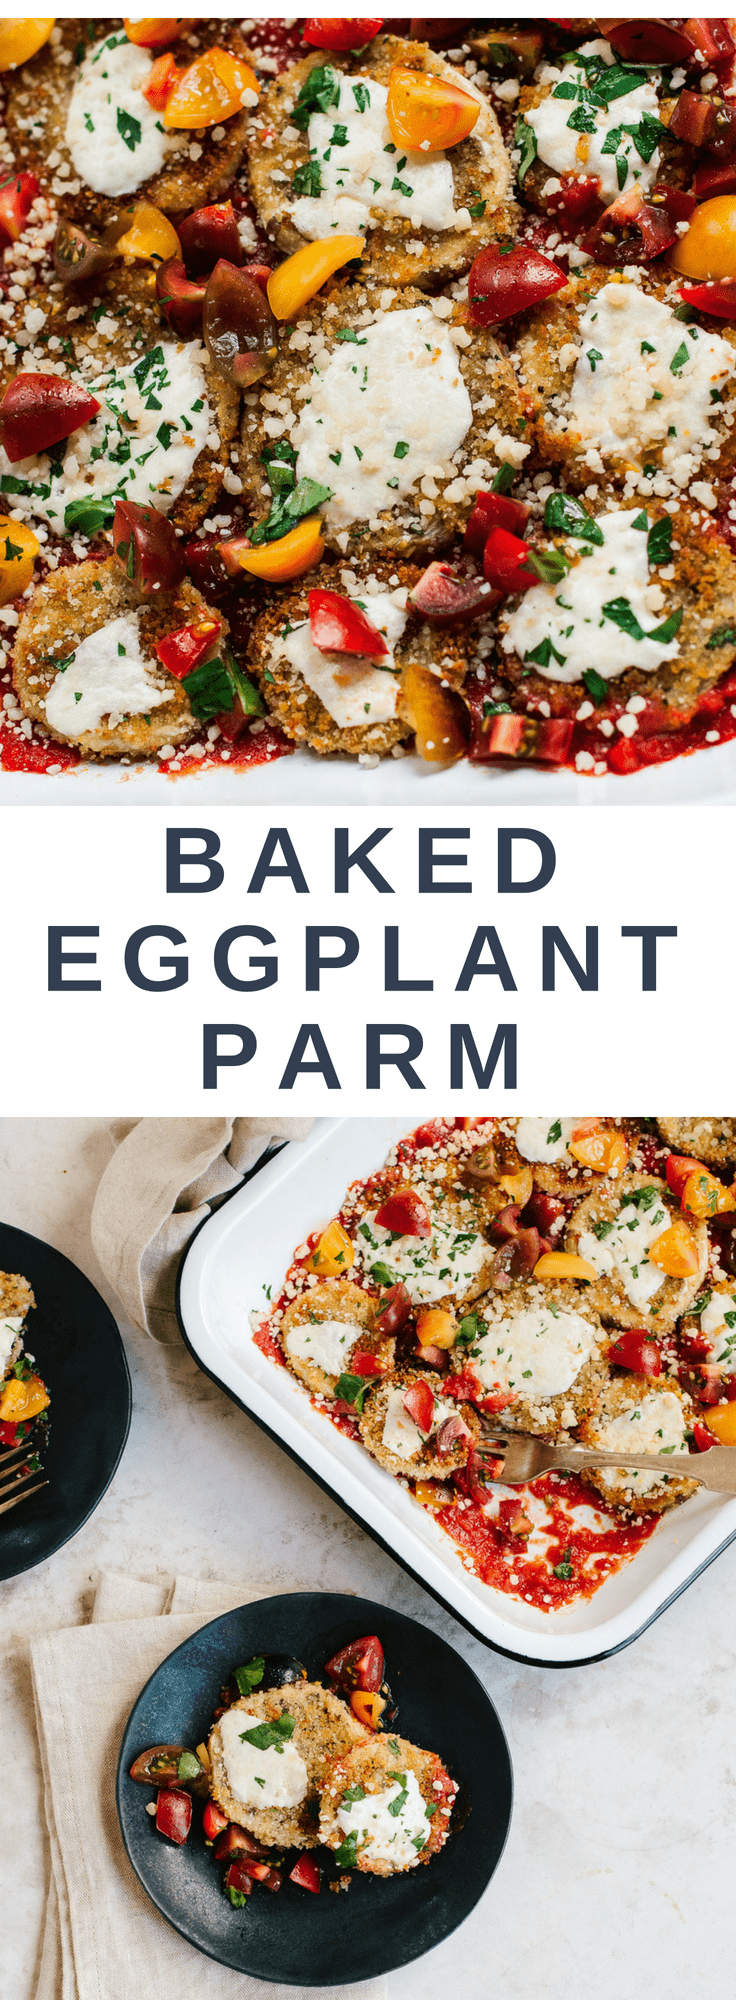 Healthier Baked Eggplant Parm with Tomato-Basil Salad #sheetpan #healthy #comfortfood #vegetarian #lowcarb